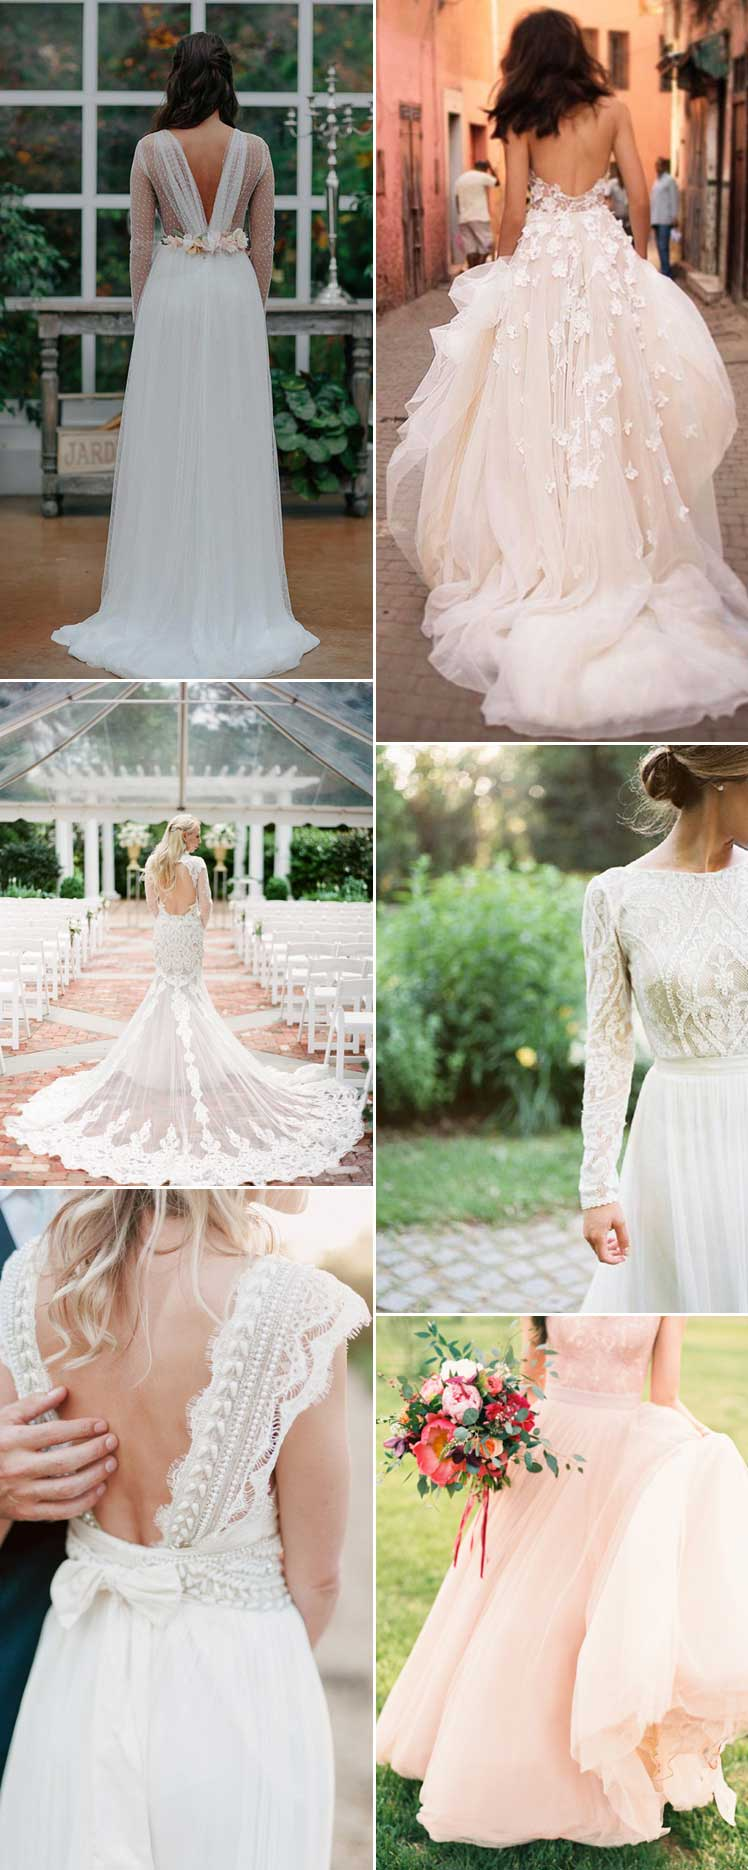 Feminine wedding dress inspiration